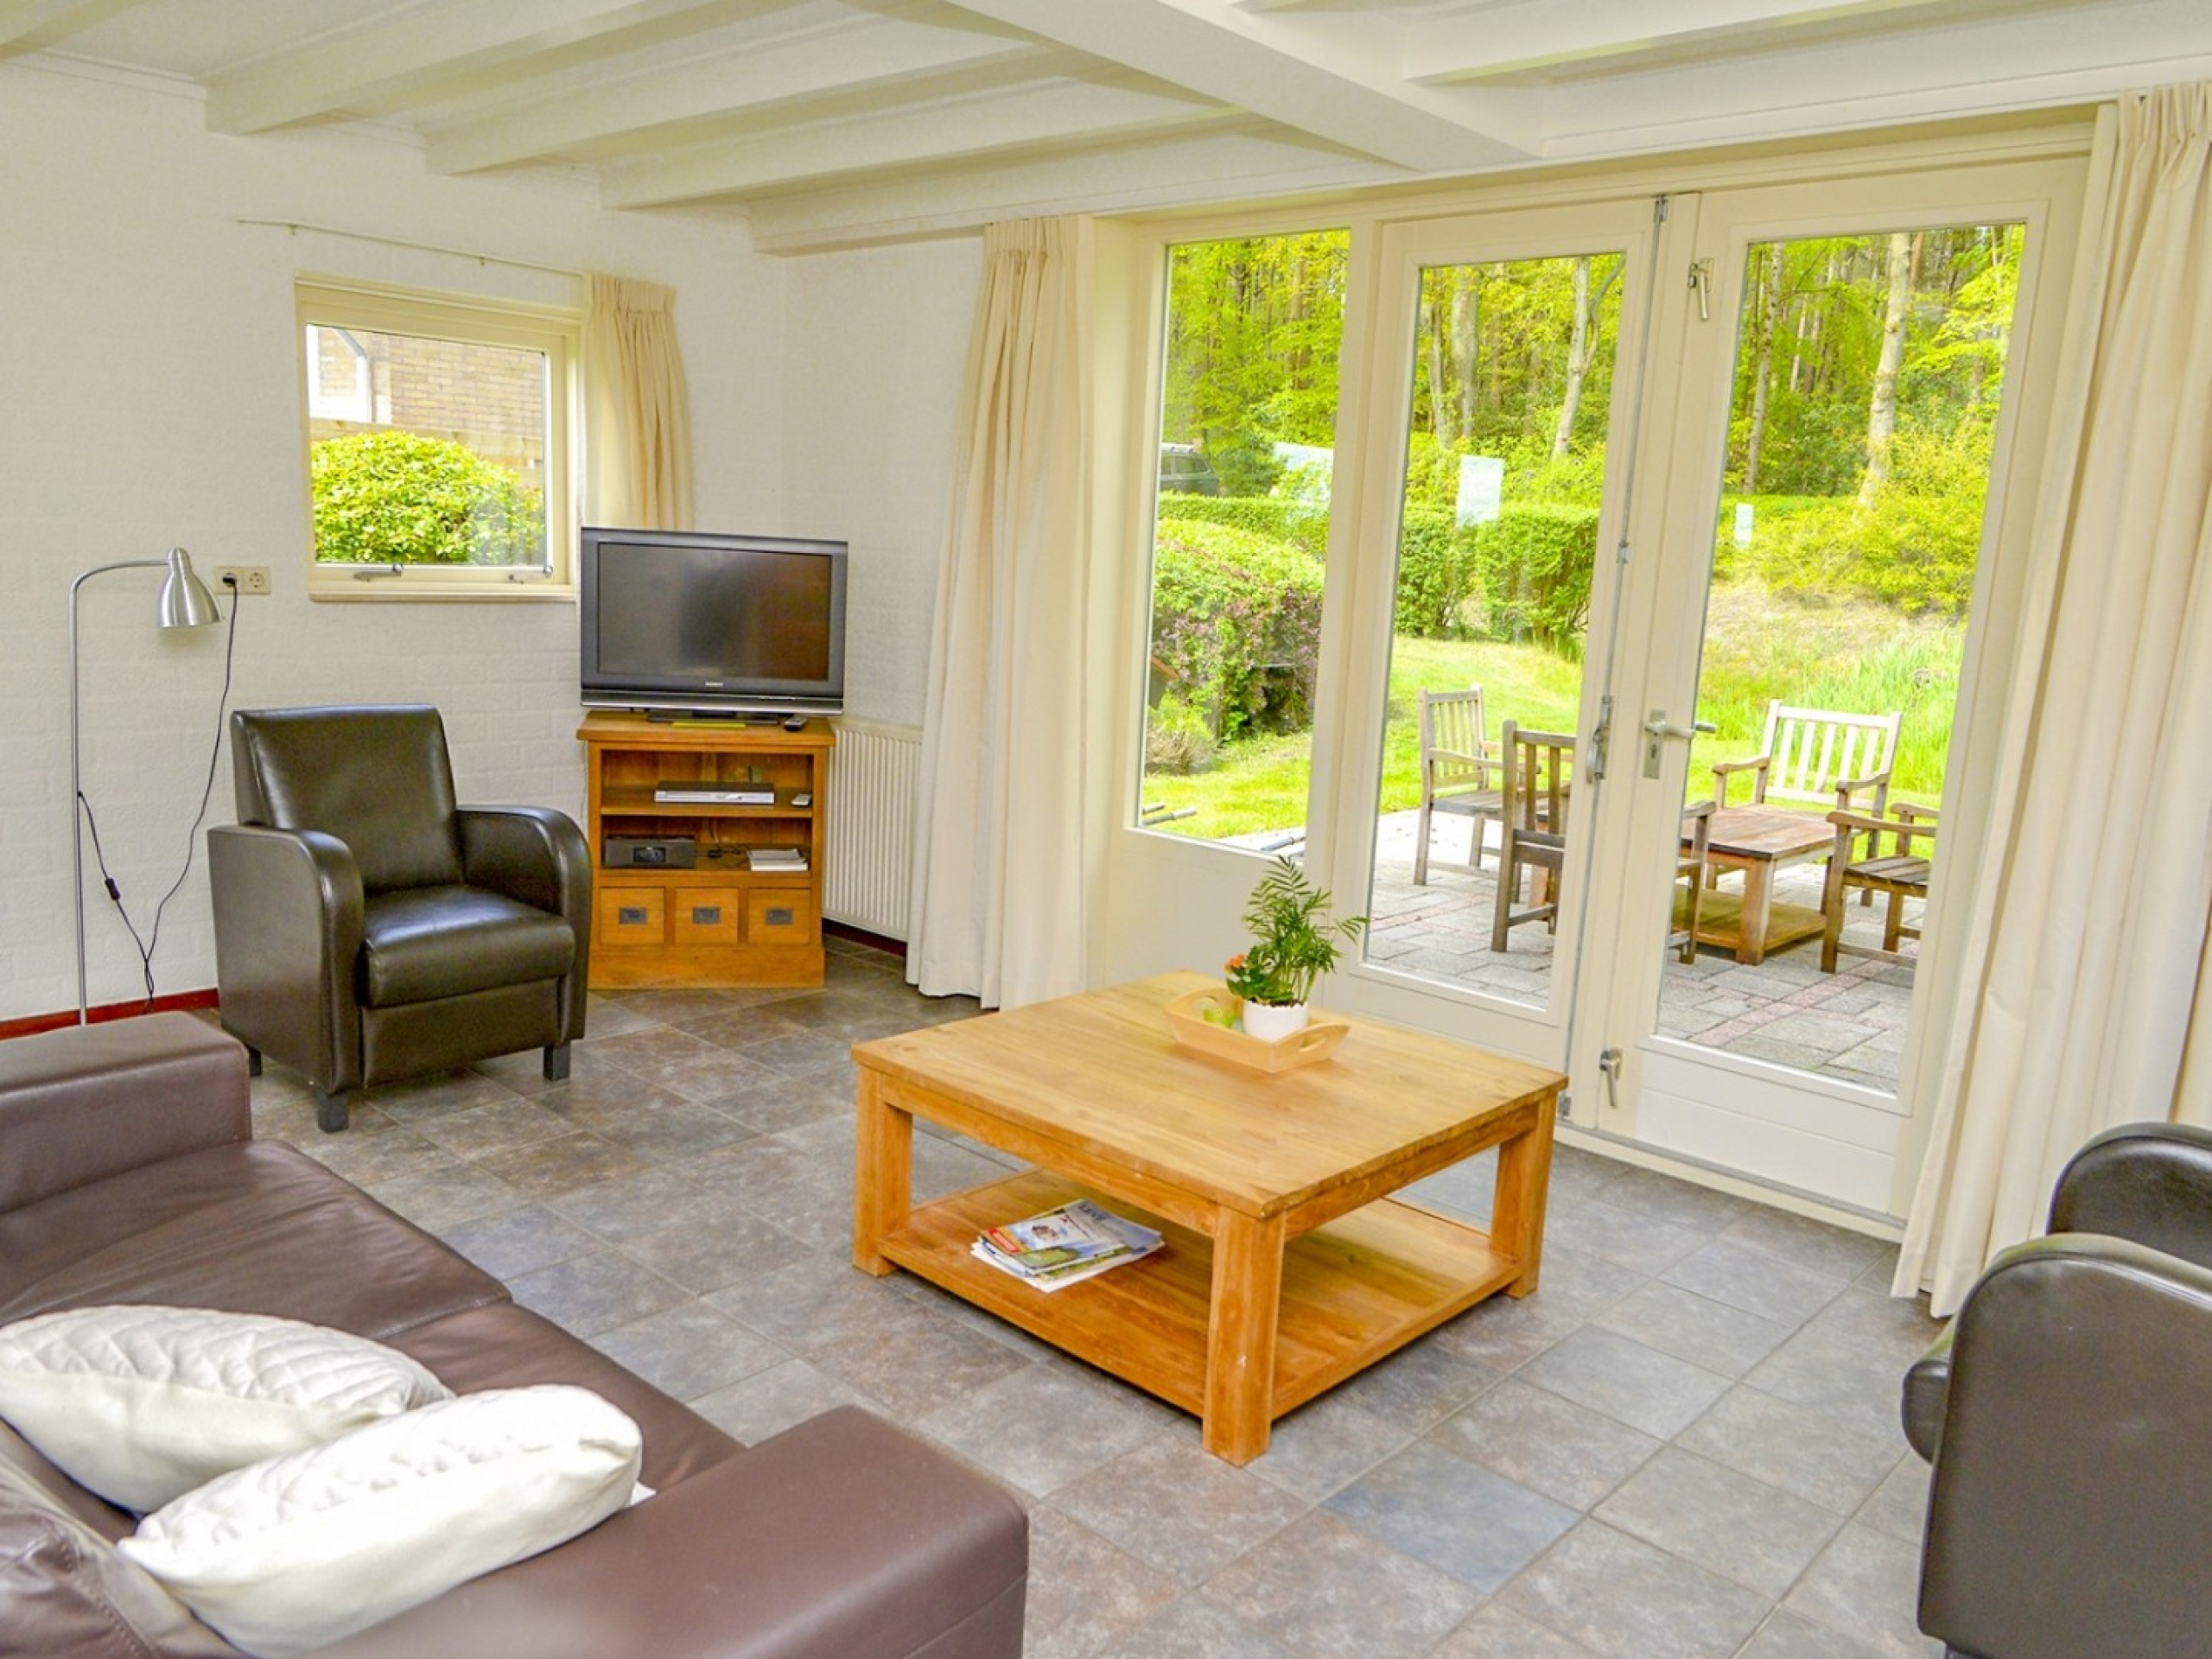 Comfortable holiday home near Den Hoorn with wide open views